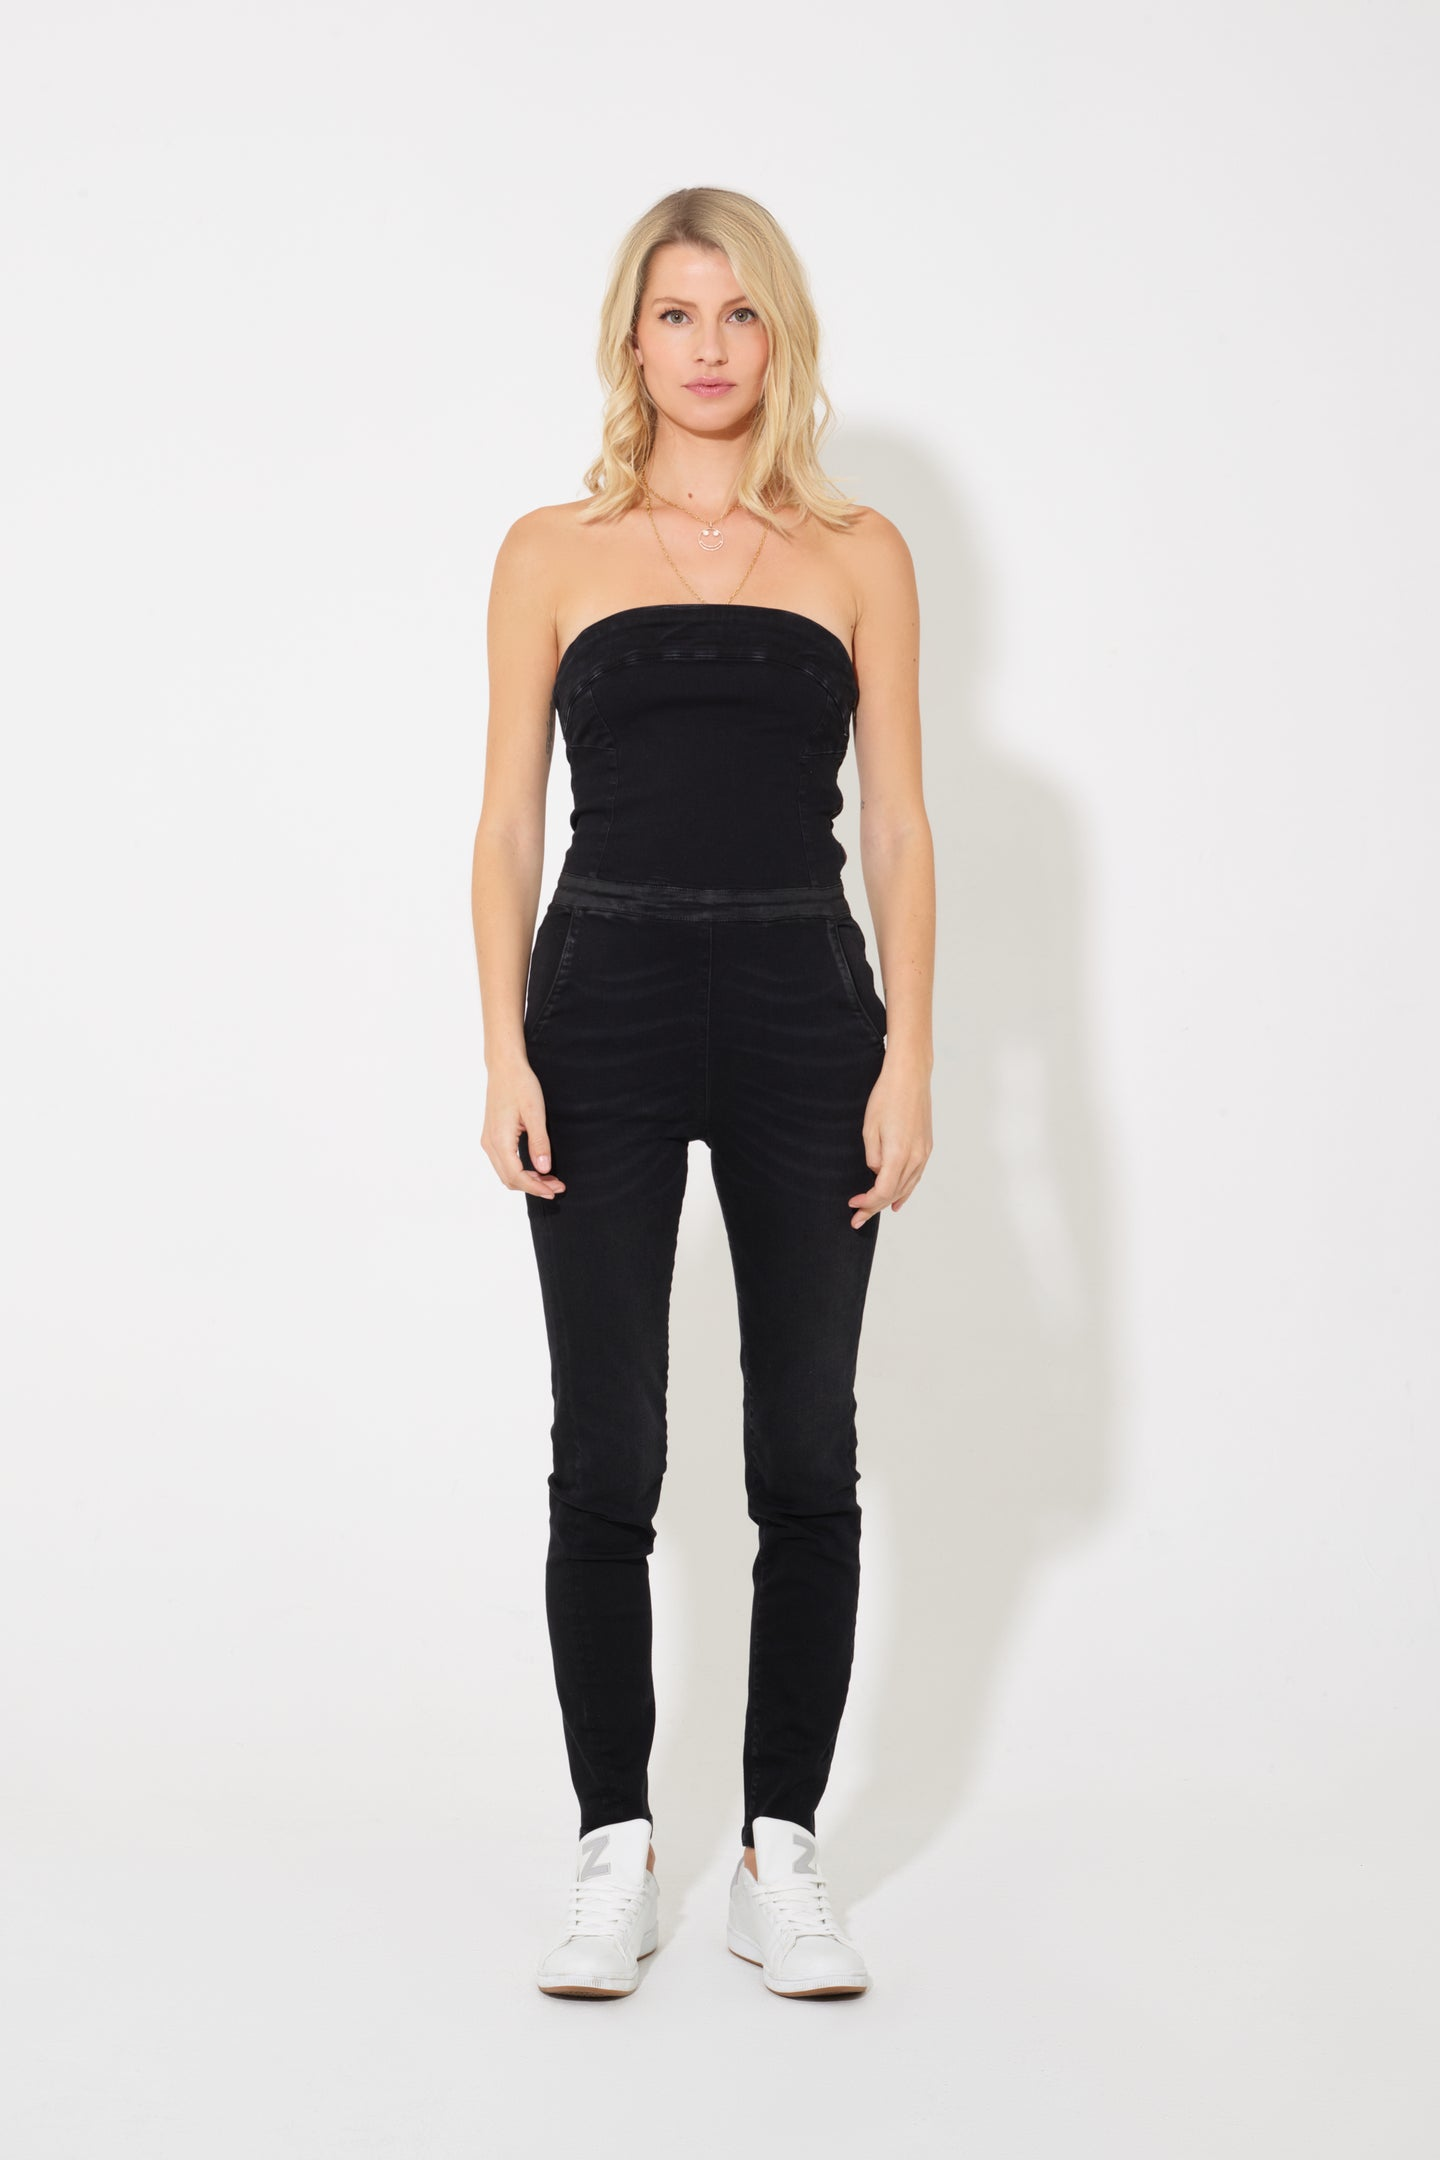 Olivia The Strapless Jumpsuit - Dark Days